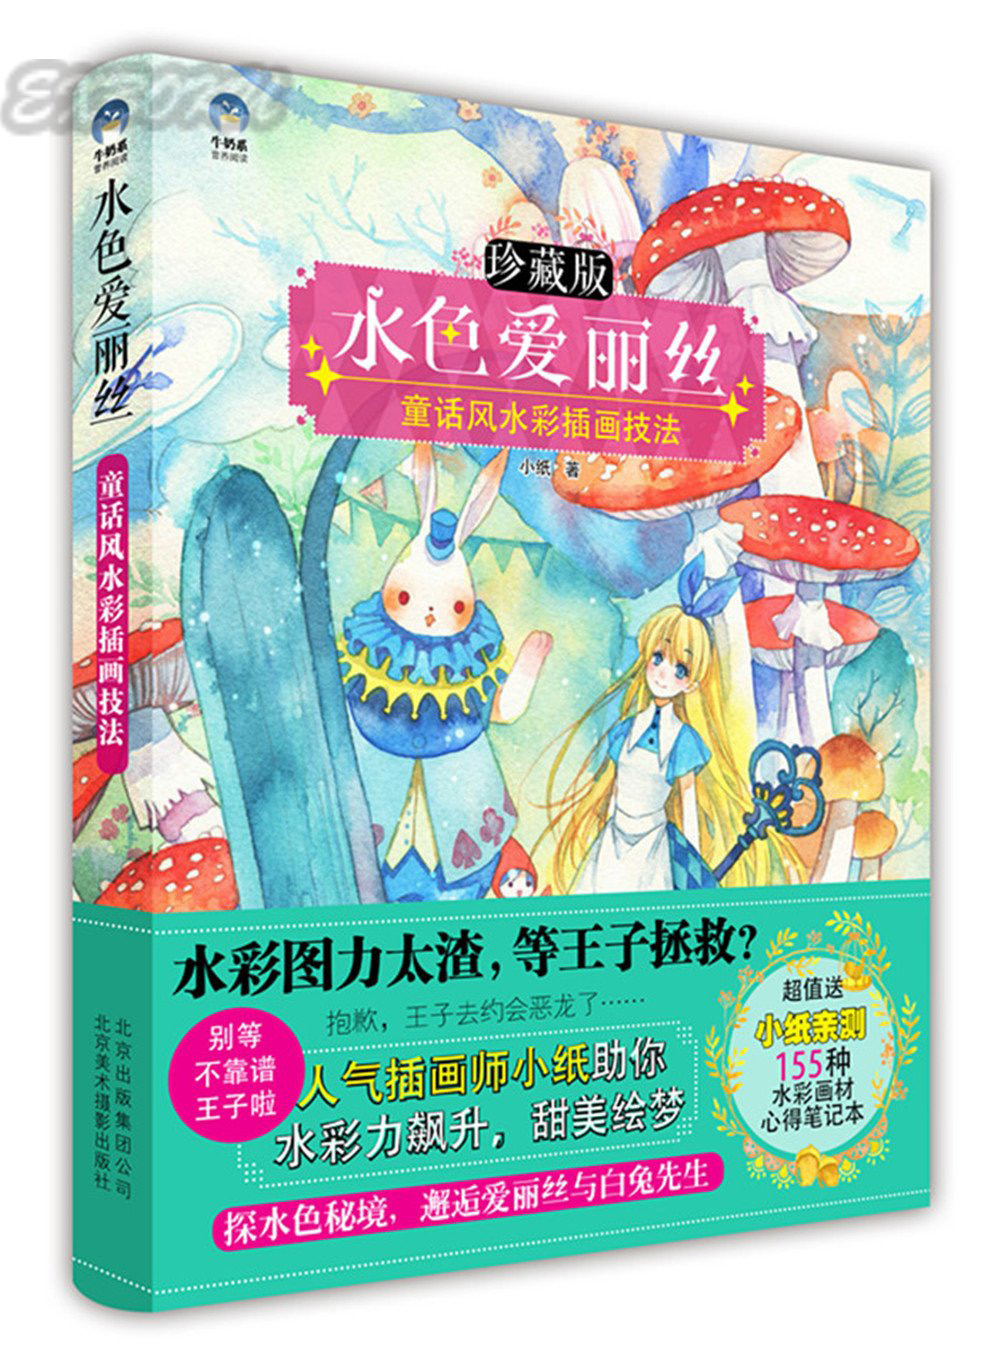 Chinese Illustration Book : Alice In Watercolor - Fairy Tale Characters Painting